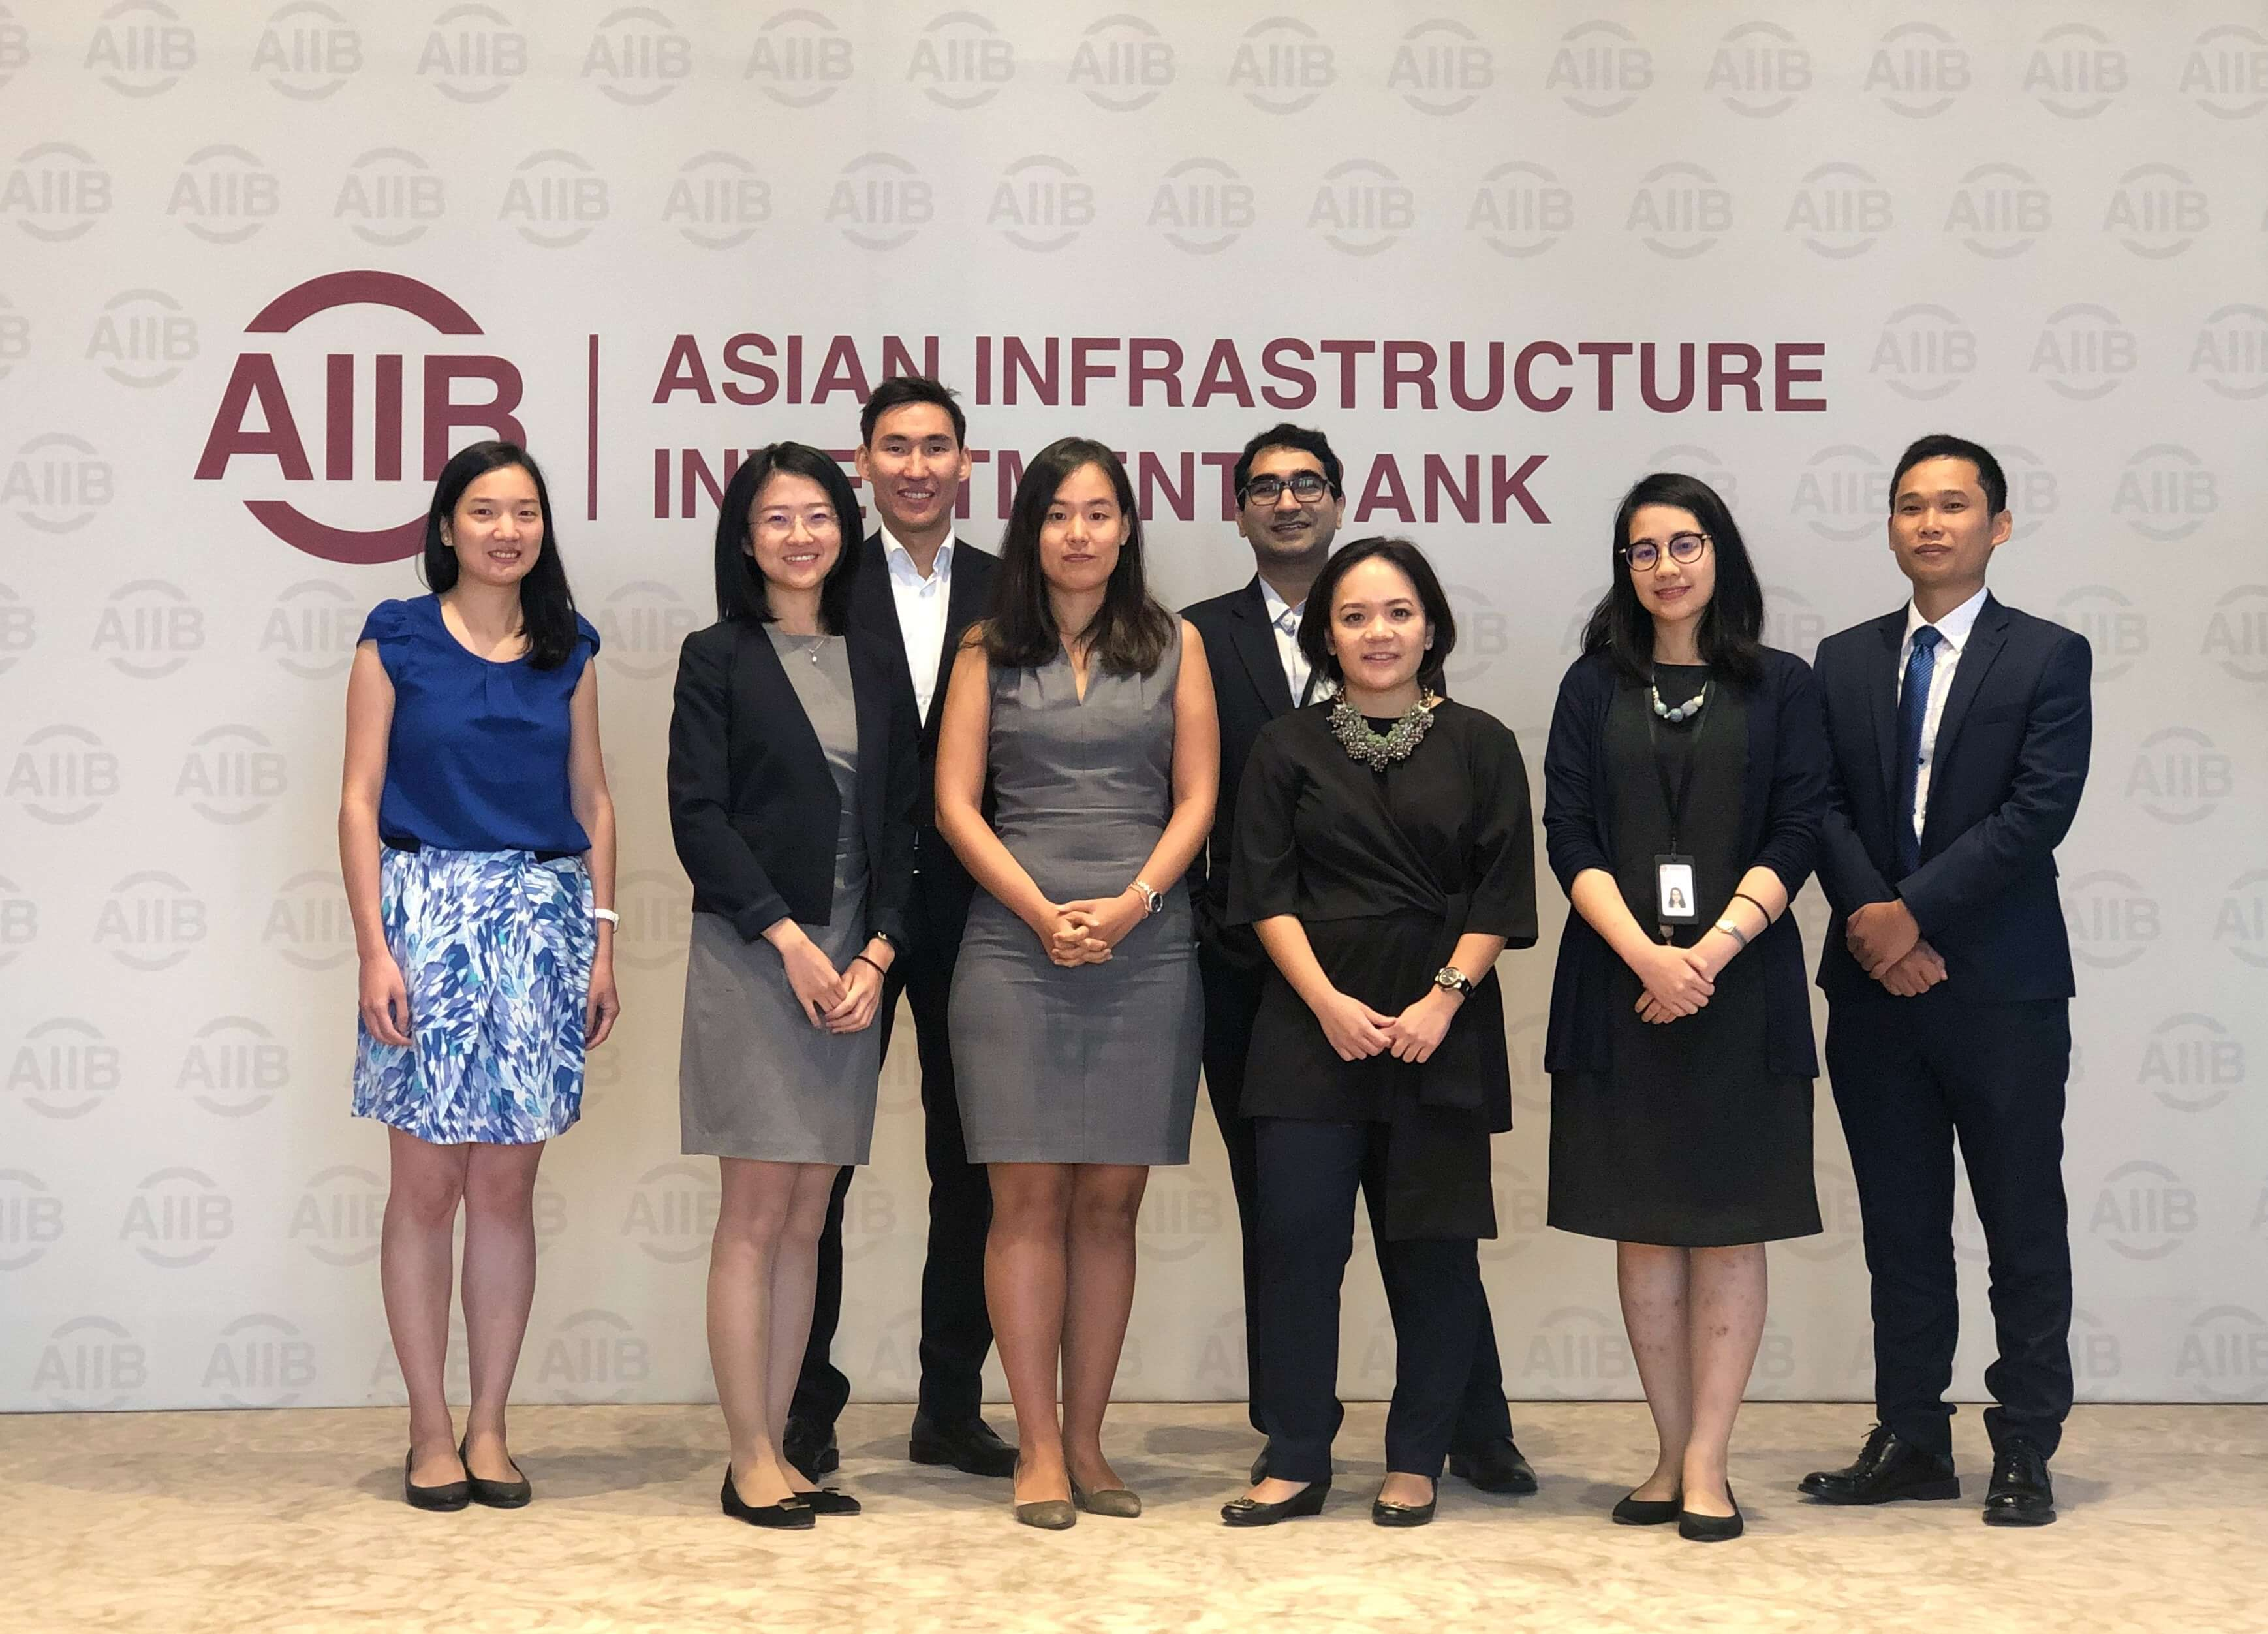 Asian infrastructure investment bank young professionals programme ypp c09064f5 ab1c 46b2 85c5 41d623d1ced4